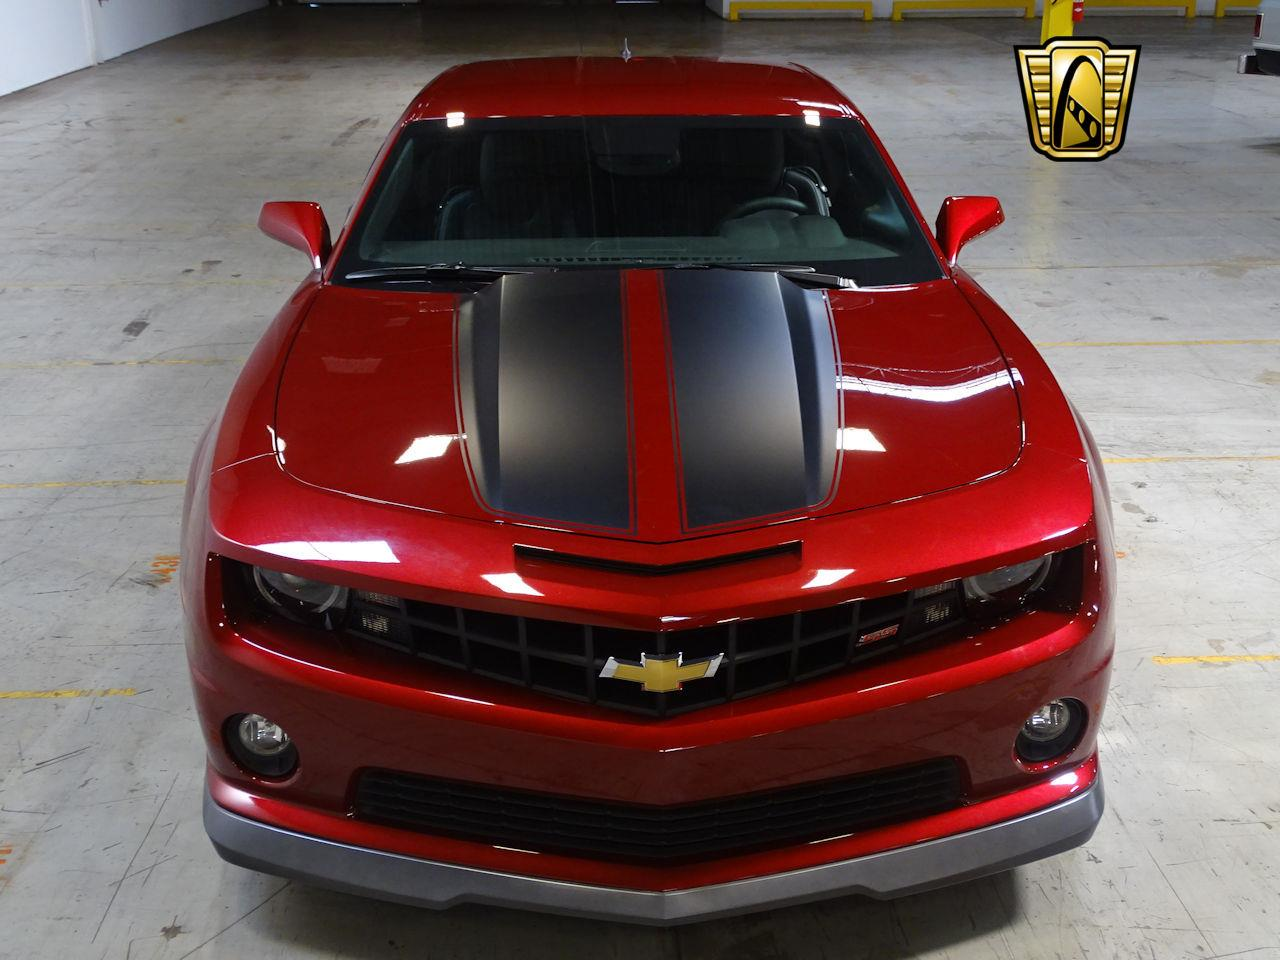 2010 Chevrolet Camaro (CC-1342487) for sale in O'Fallon, Illinois